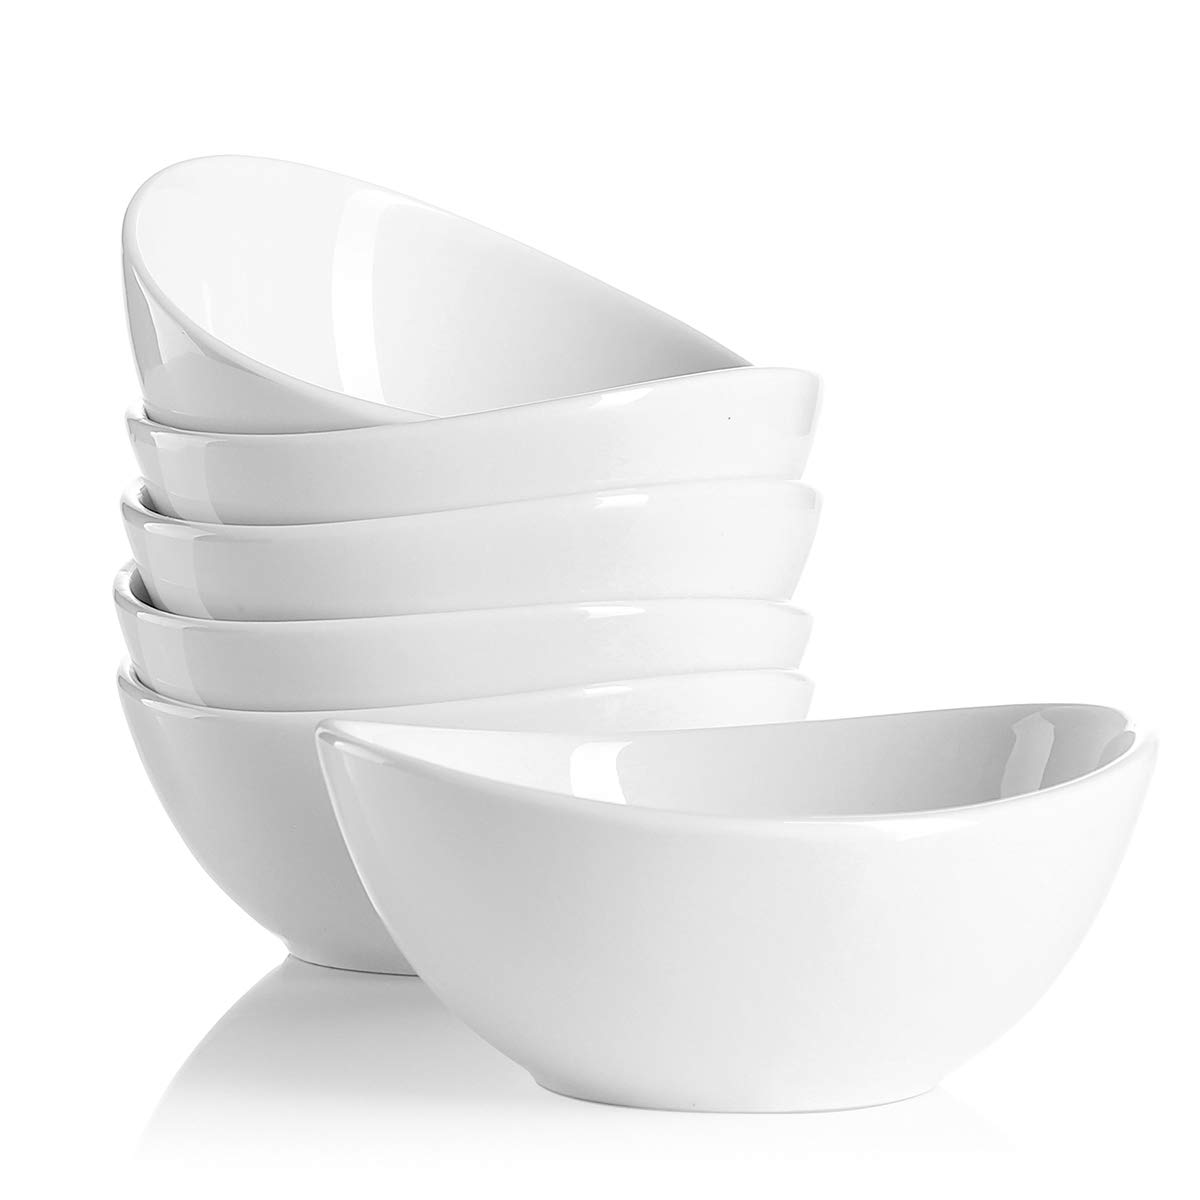 Hot Assorted Colors Sweese 1107 Porcelain Bowls Set of 6 Dessert 10 Ounce for Ice Cream